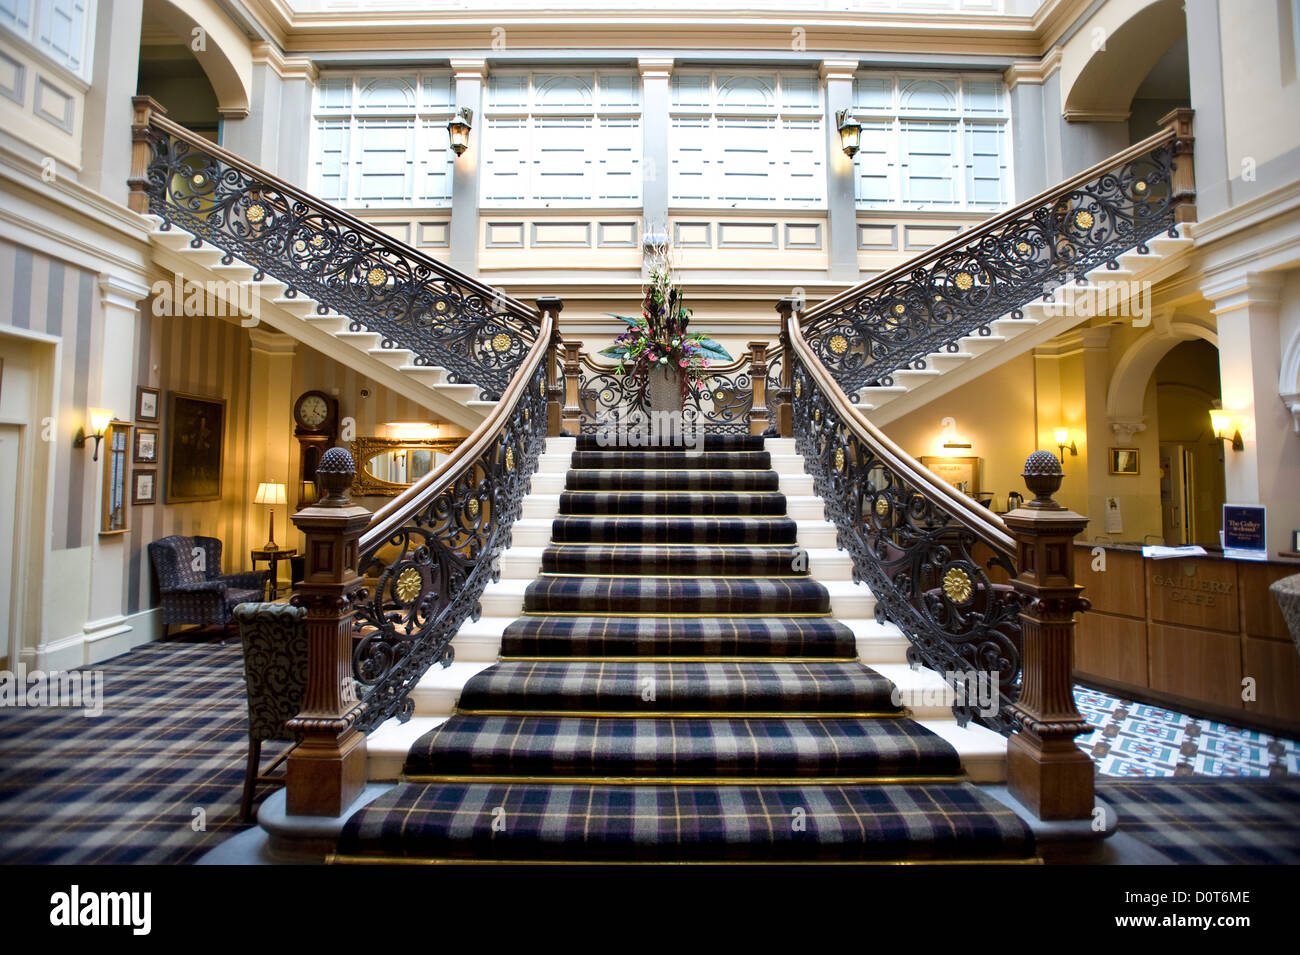 The Grand staircase in the Highland Railway's 'Station Hotel' in Inverness, Scottish Highlands, Scotland, - Stock Image